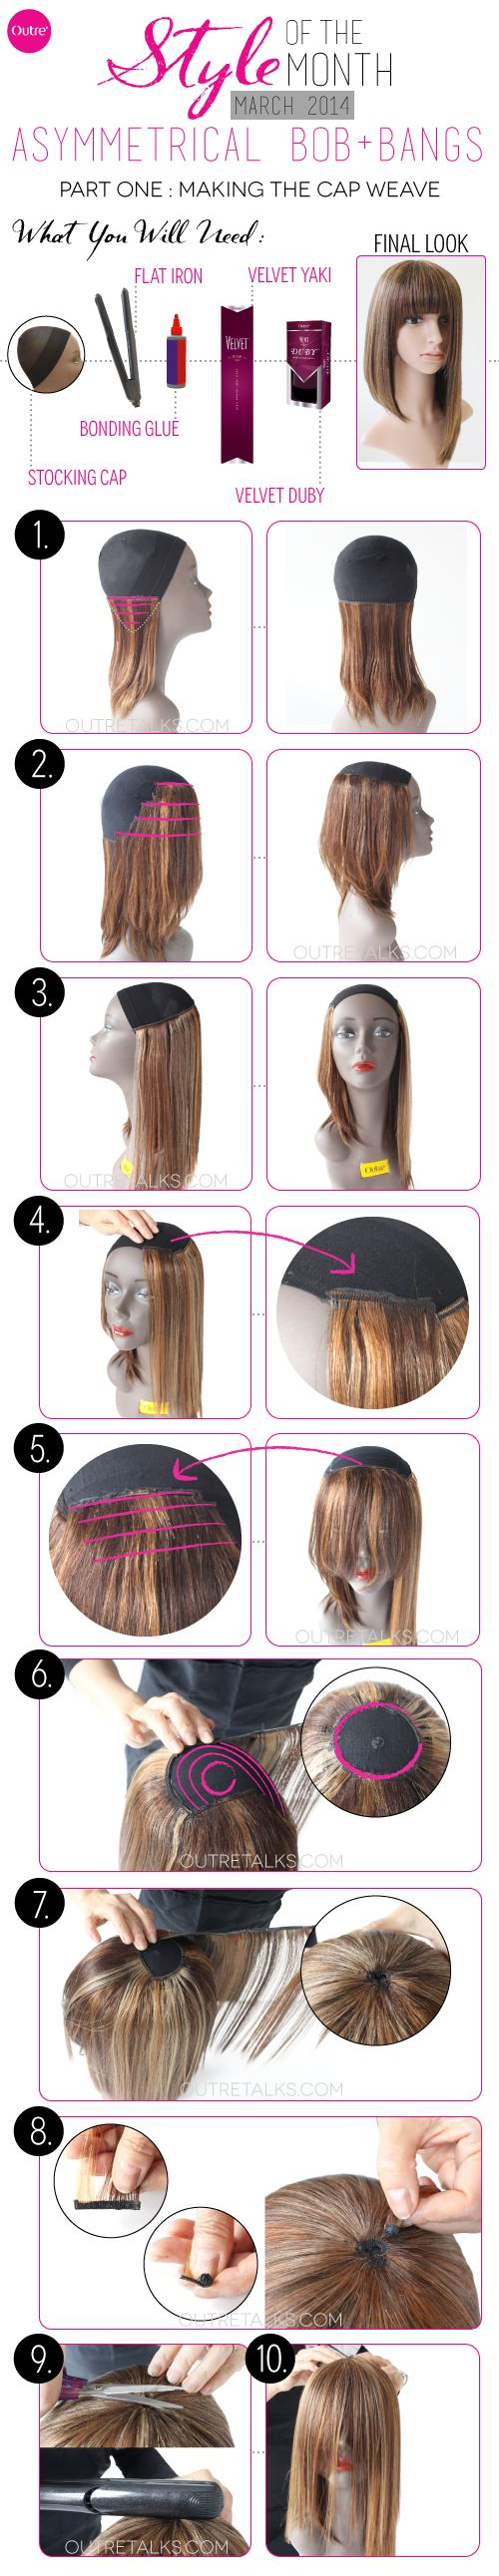 Best 25 glue in hair extensions ideas on pinterest diy hair best 25 glue in hair extensions ideas on pinterest diy hair extensions glue make a wig and glue in weave pmusecretfo Images